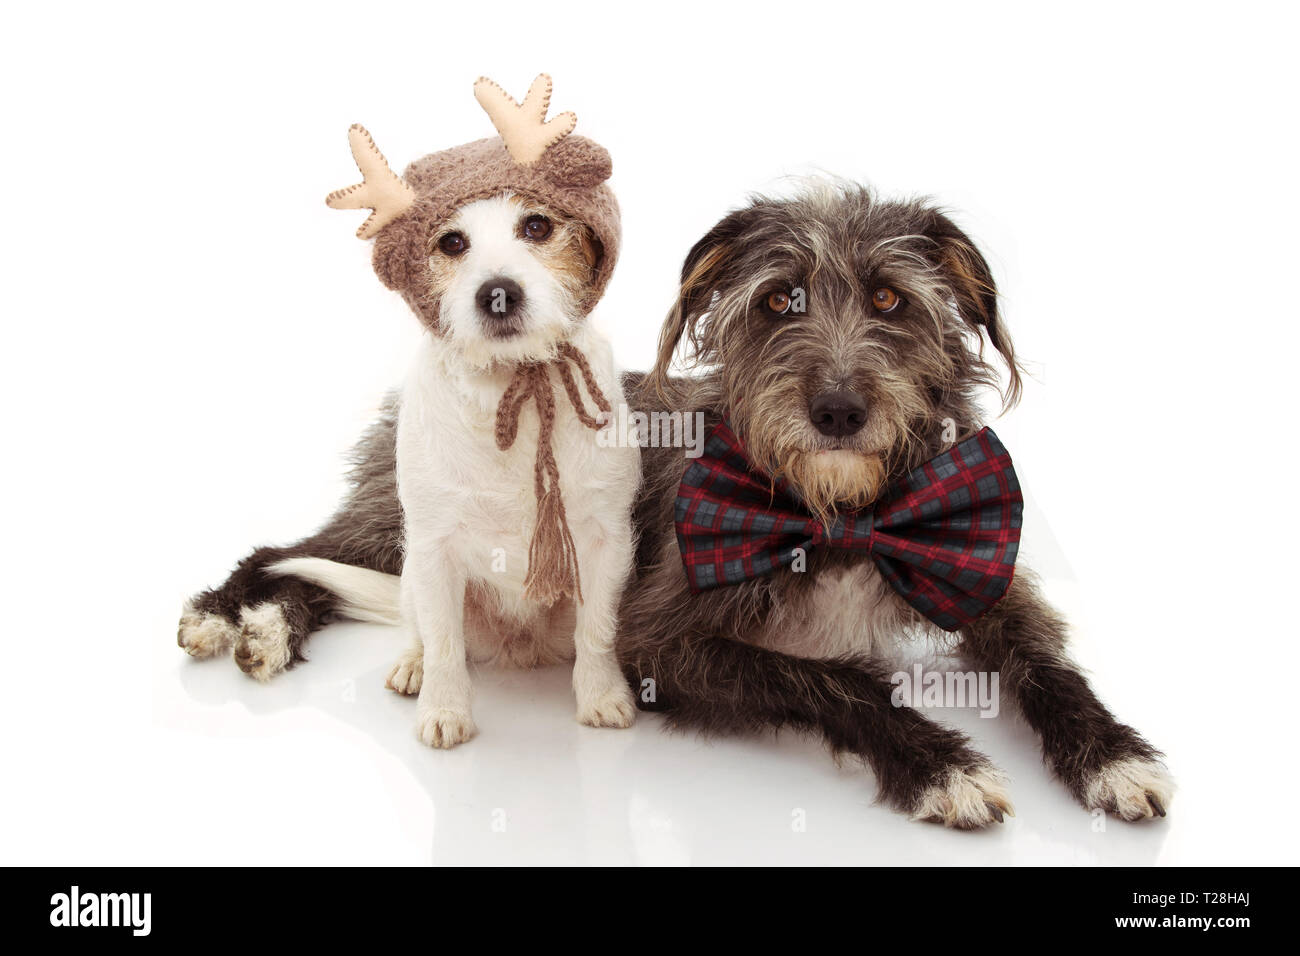 TWO DOGS CELEBRATING CHRISTMAS. JACK RUSSELL AND SHEEPDOG WEARING A REINDEER AND BOWTIE HOLIDAYS. ISOLATED ON WHITE BACKGROUND. - Stock Image